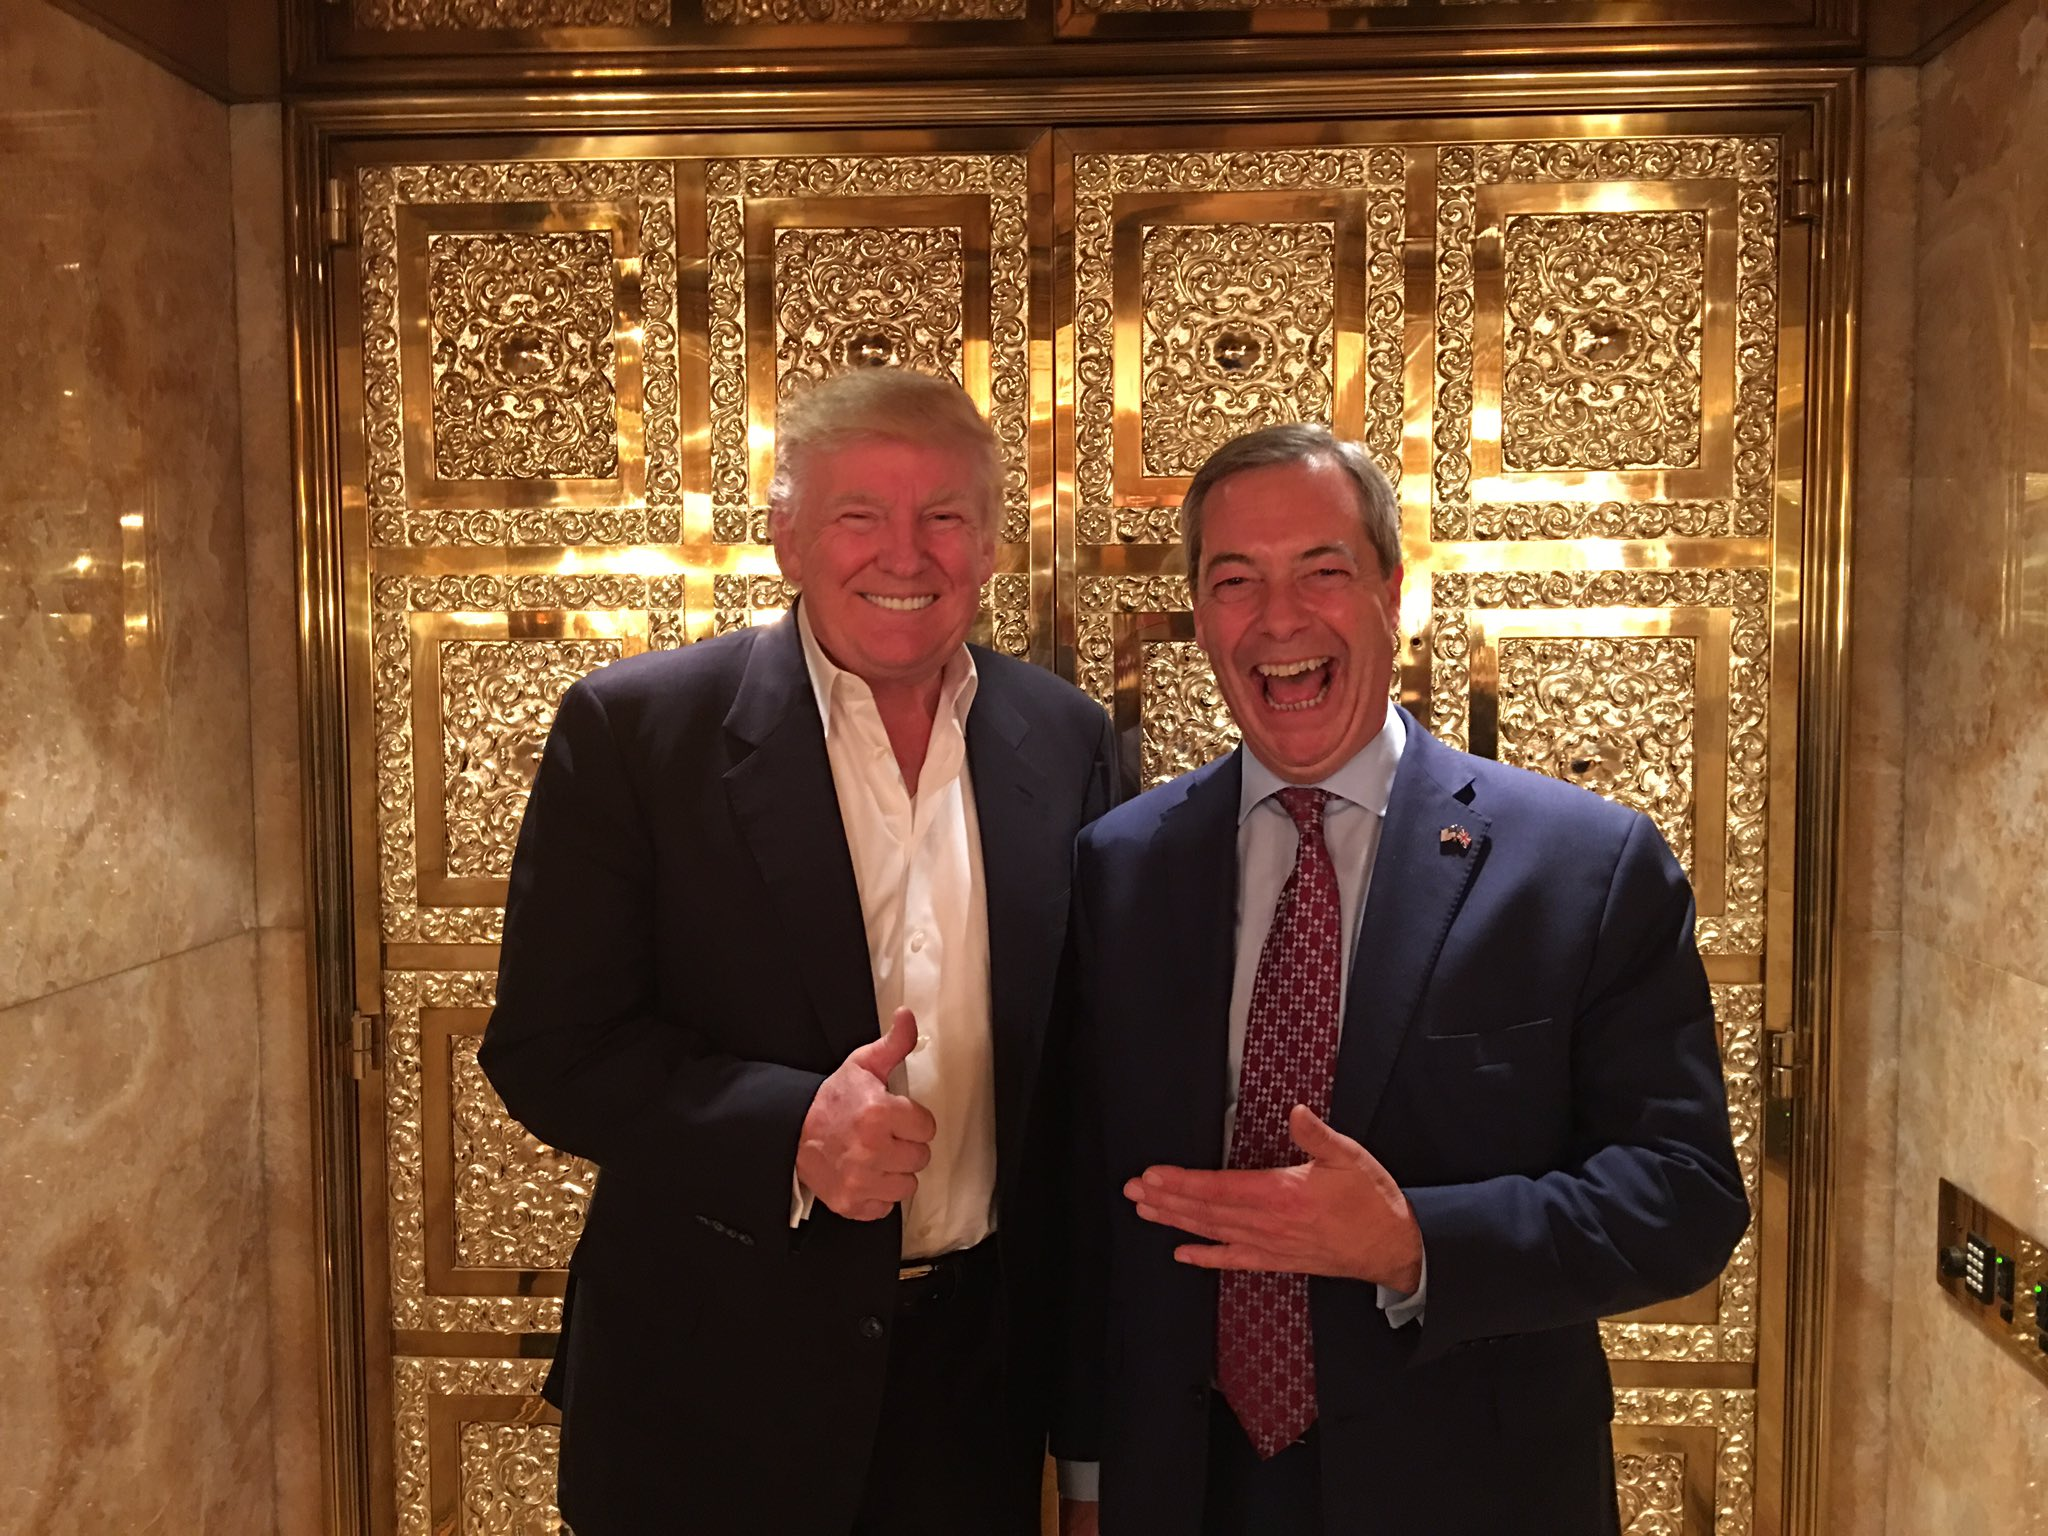 Nigel Farage is the first British politician to meet Trump since the election